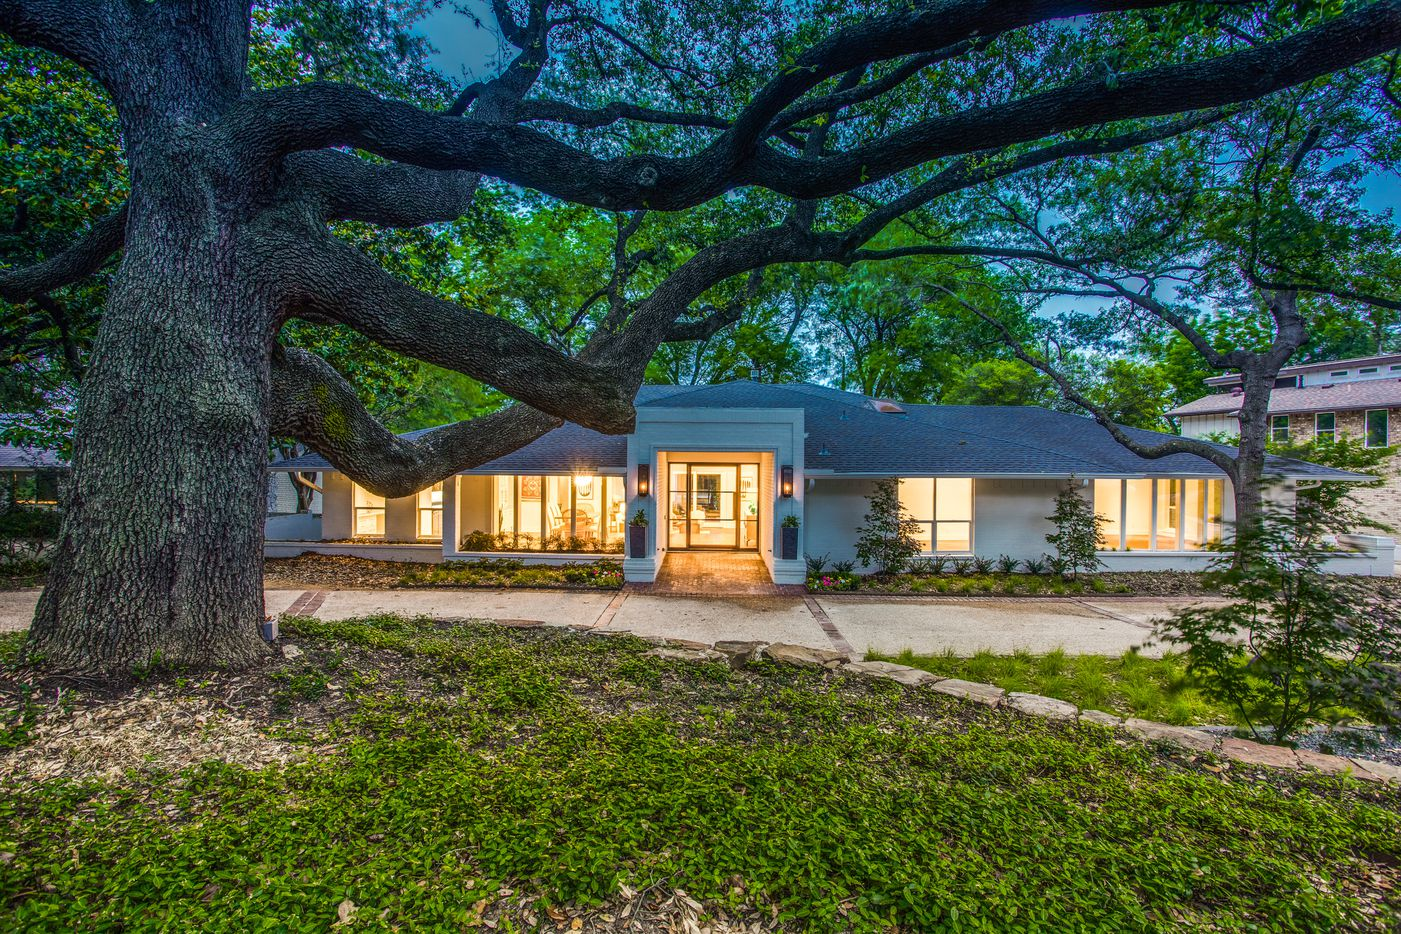 A look at the property at 7557 Benedict in Dallas.